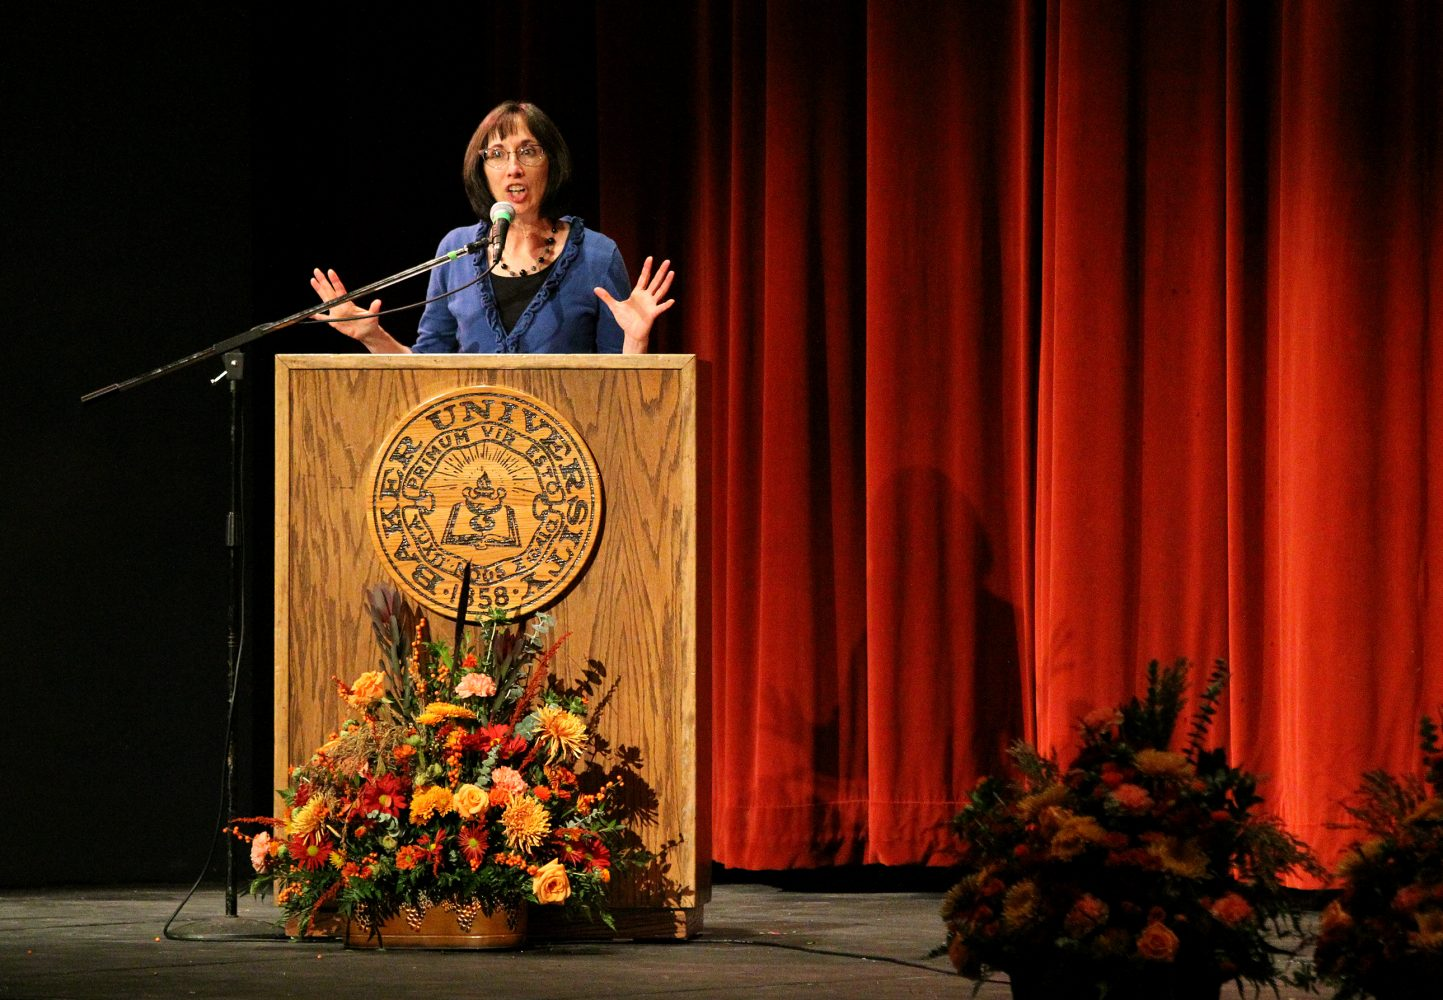 Last Lecture emphasizes role models, heroes